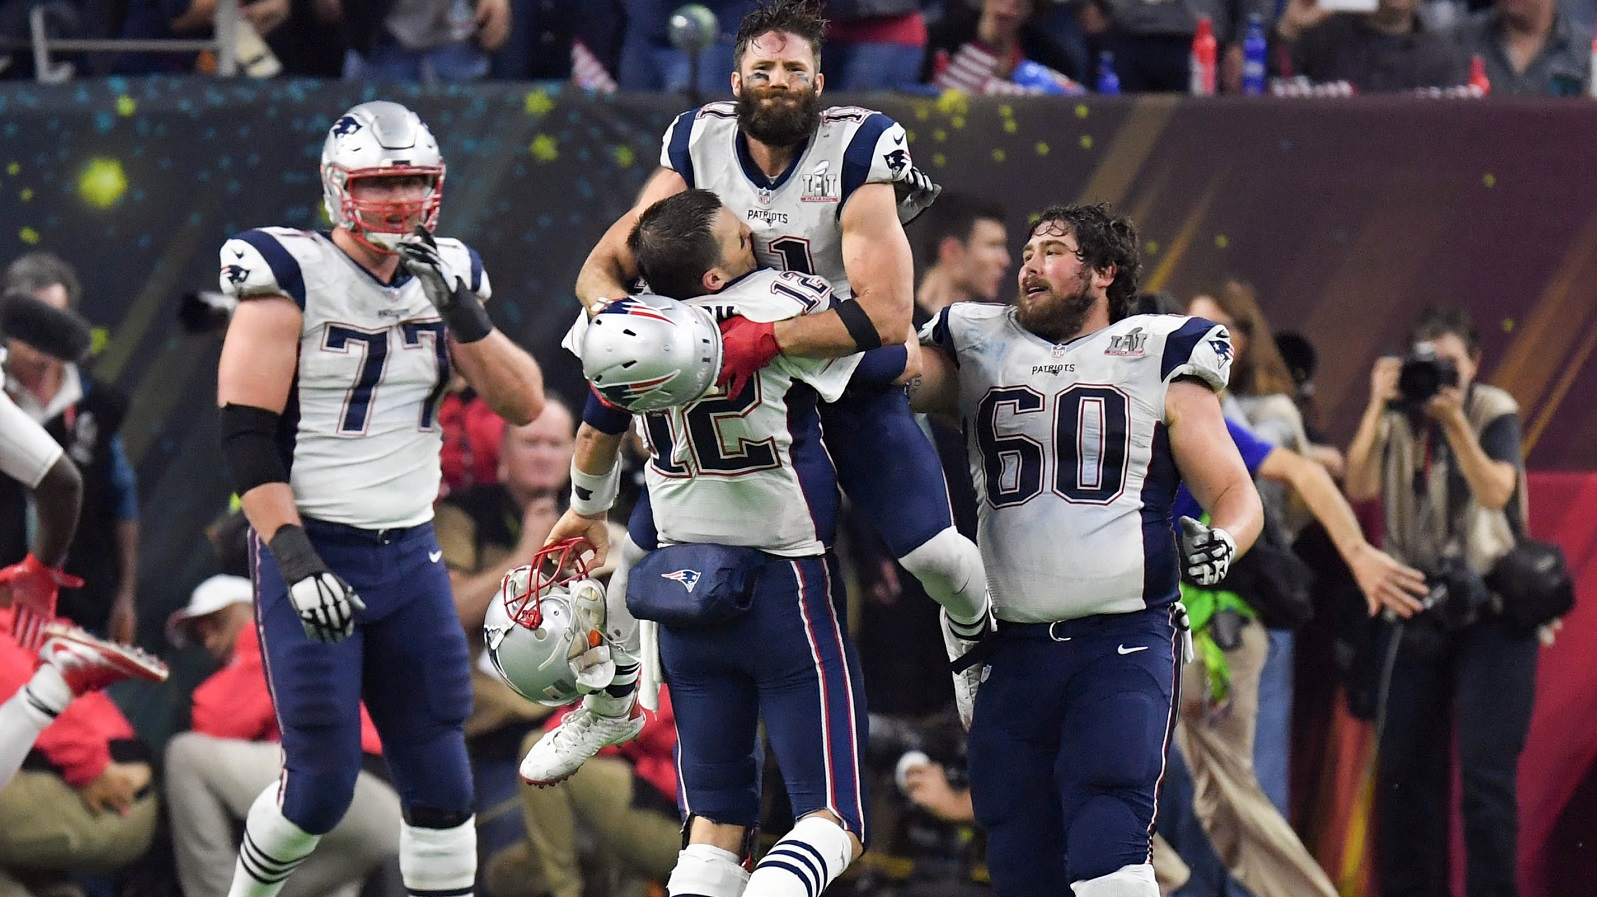 Feb 5, 2017; Houston, TX, USA; New England Patriots quarterback Tom Brady (12) and wide receiver Julian Edelman (11) celebrate their win over Atlanta Falcons during Super Bowl LI at NRG Stadium. The Patriots won 34-28. Mandatory Credit: Bob Donnan-USA TODAY Sports